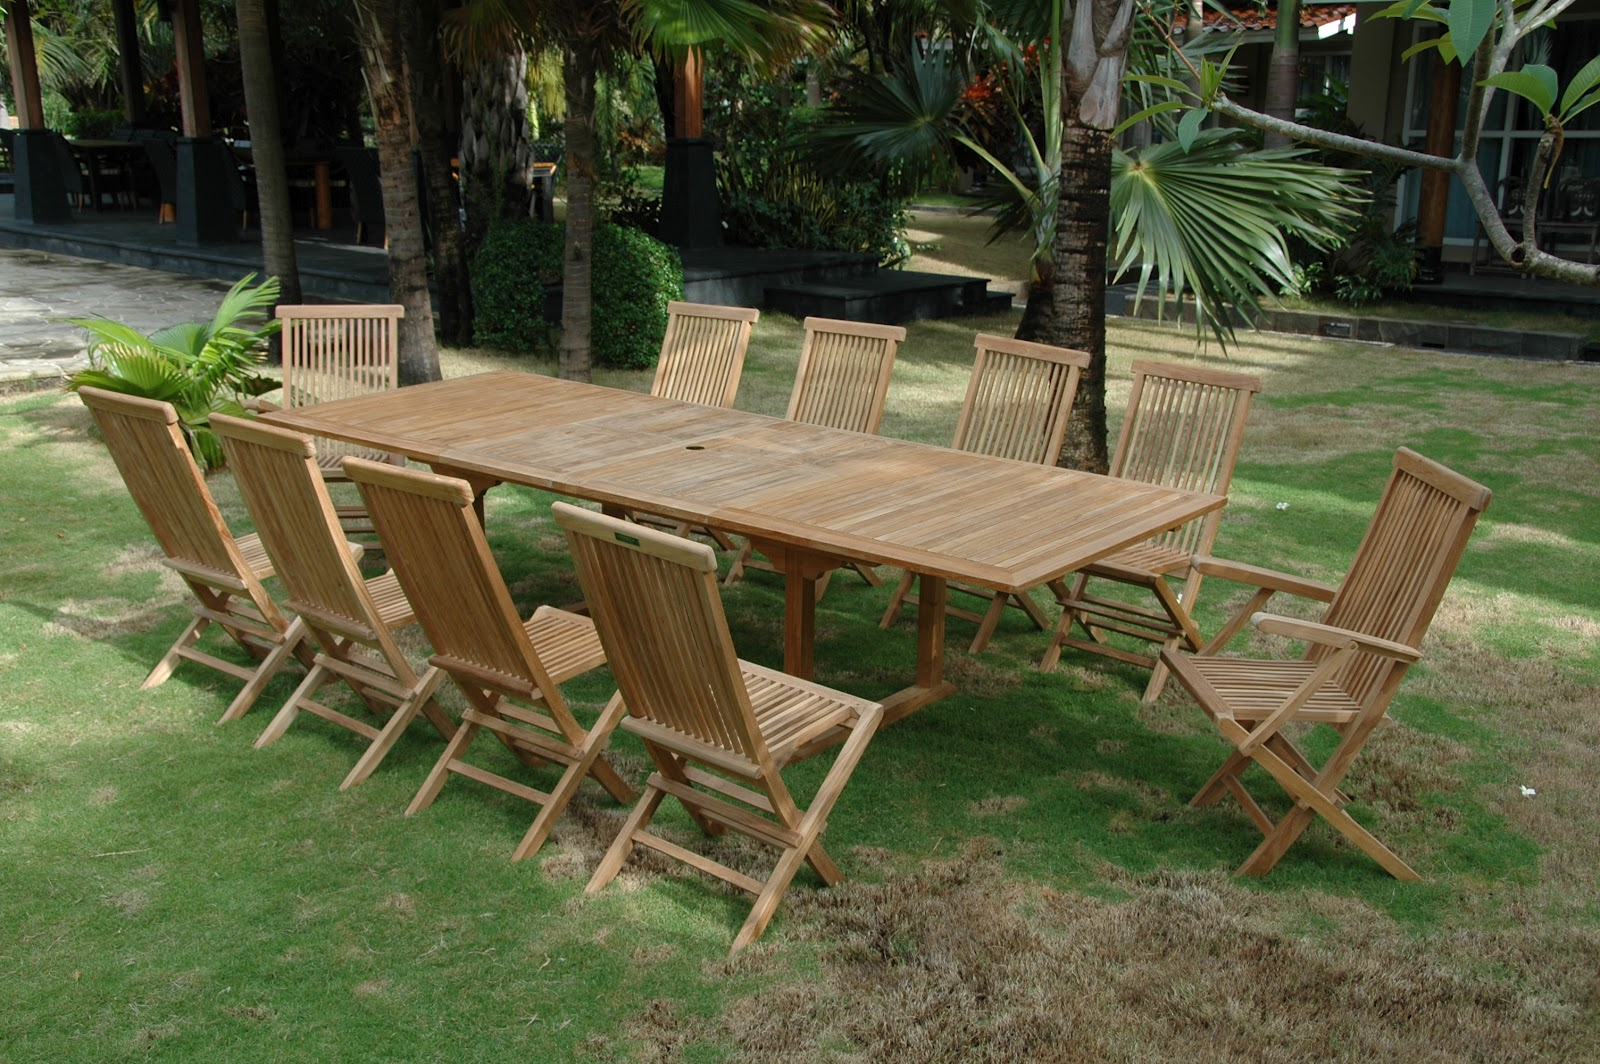 Online House Plans: Wooden Outdoor Furniture: Offering Comfort